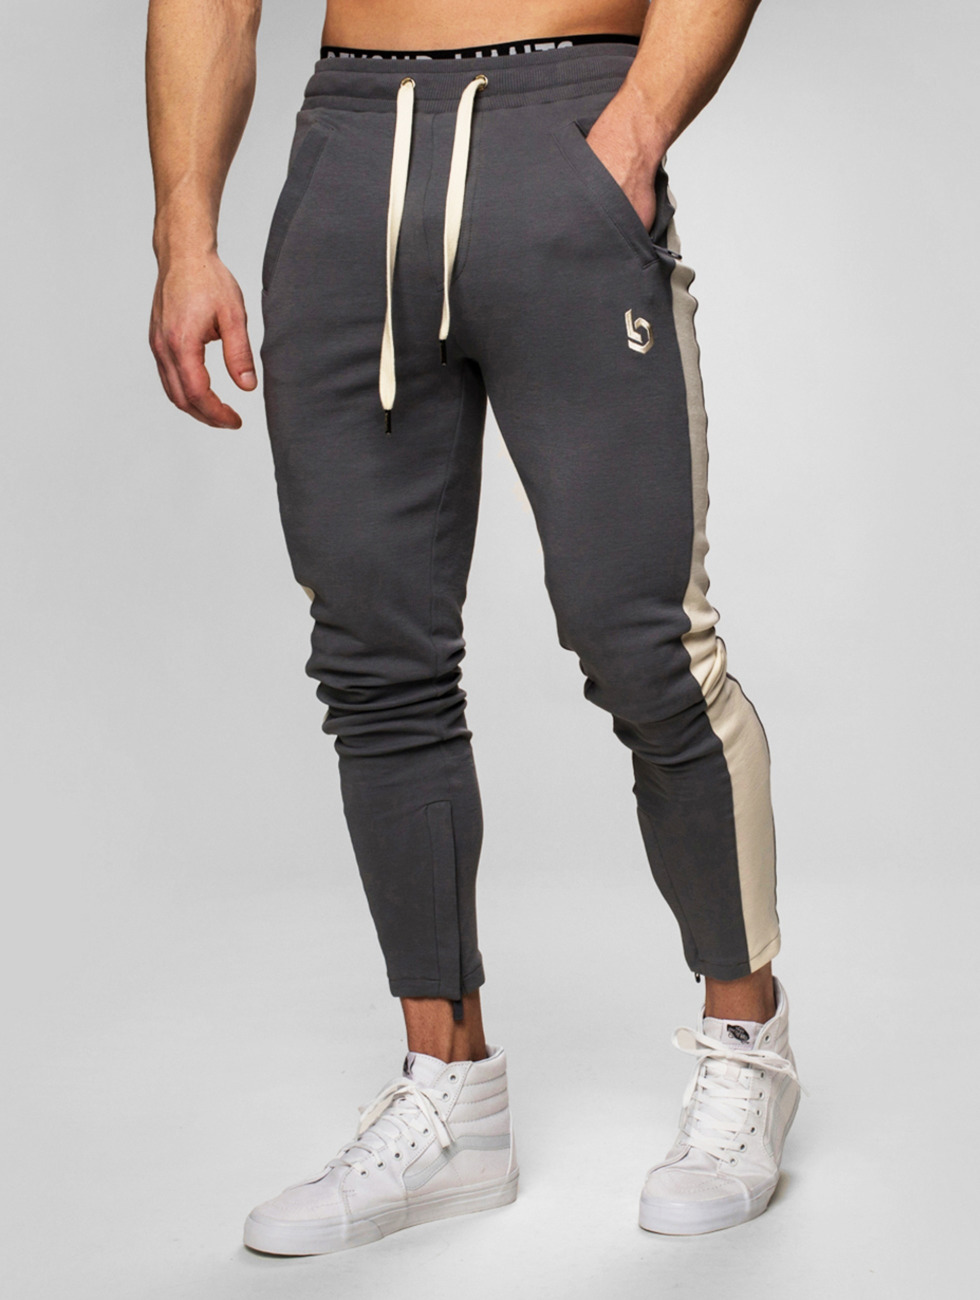 Beyond Limits Pantalone ginnico Foundation grigio